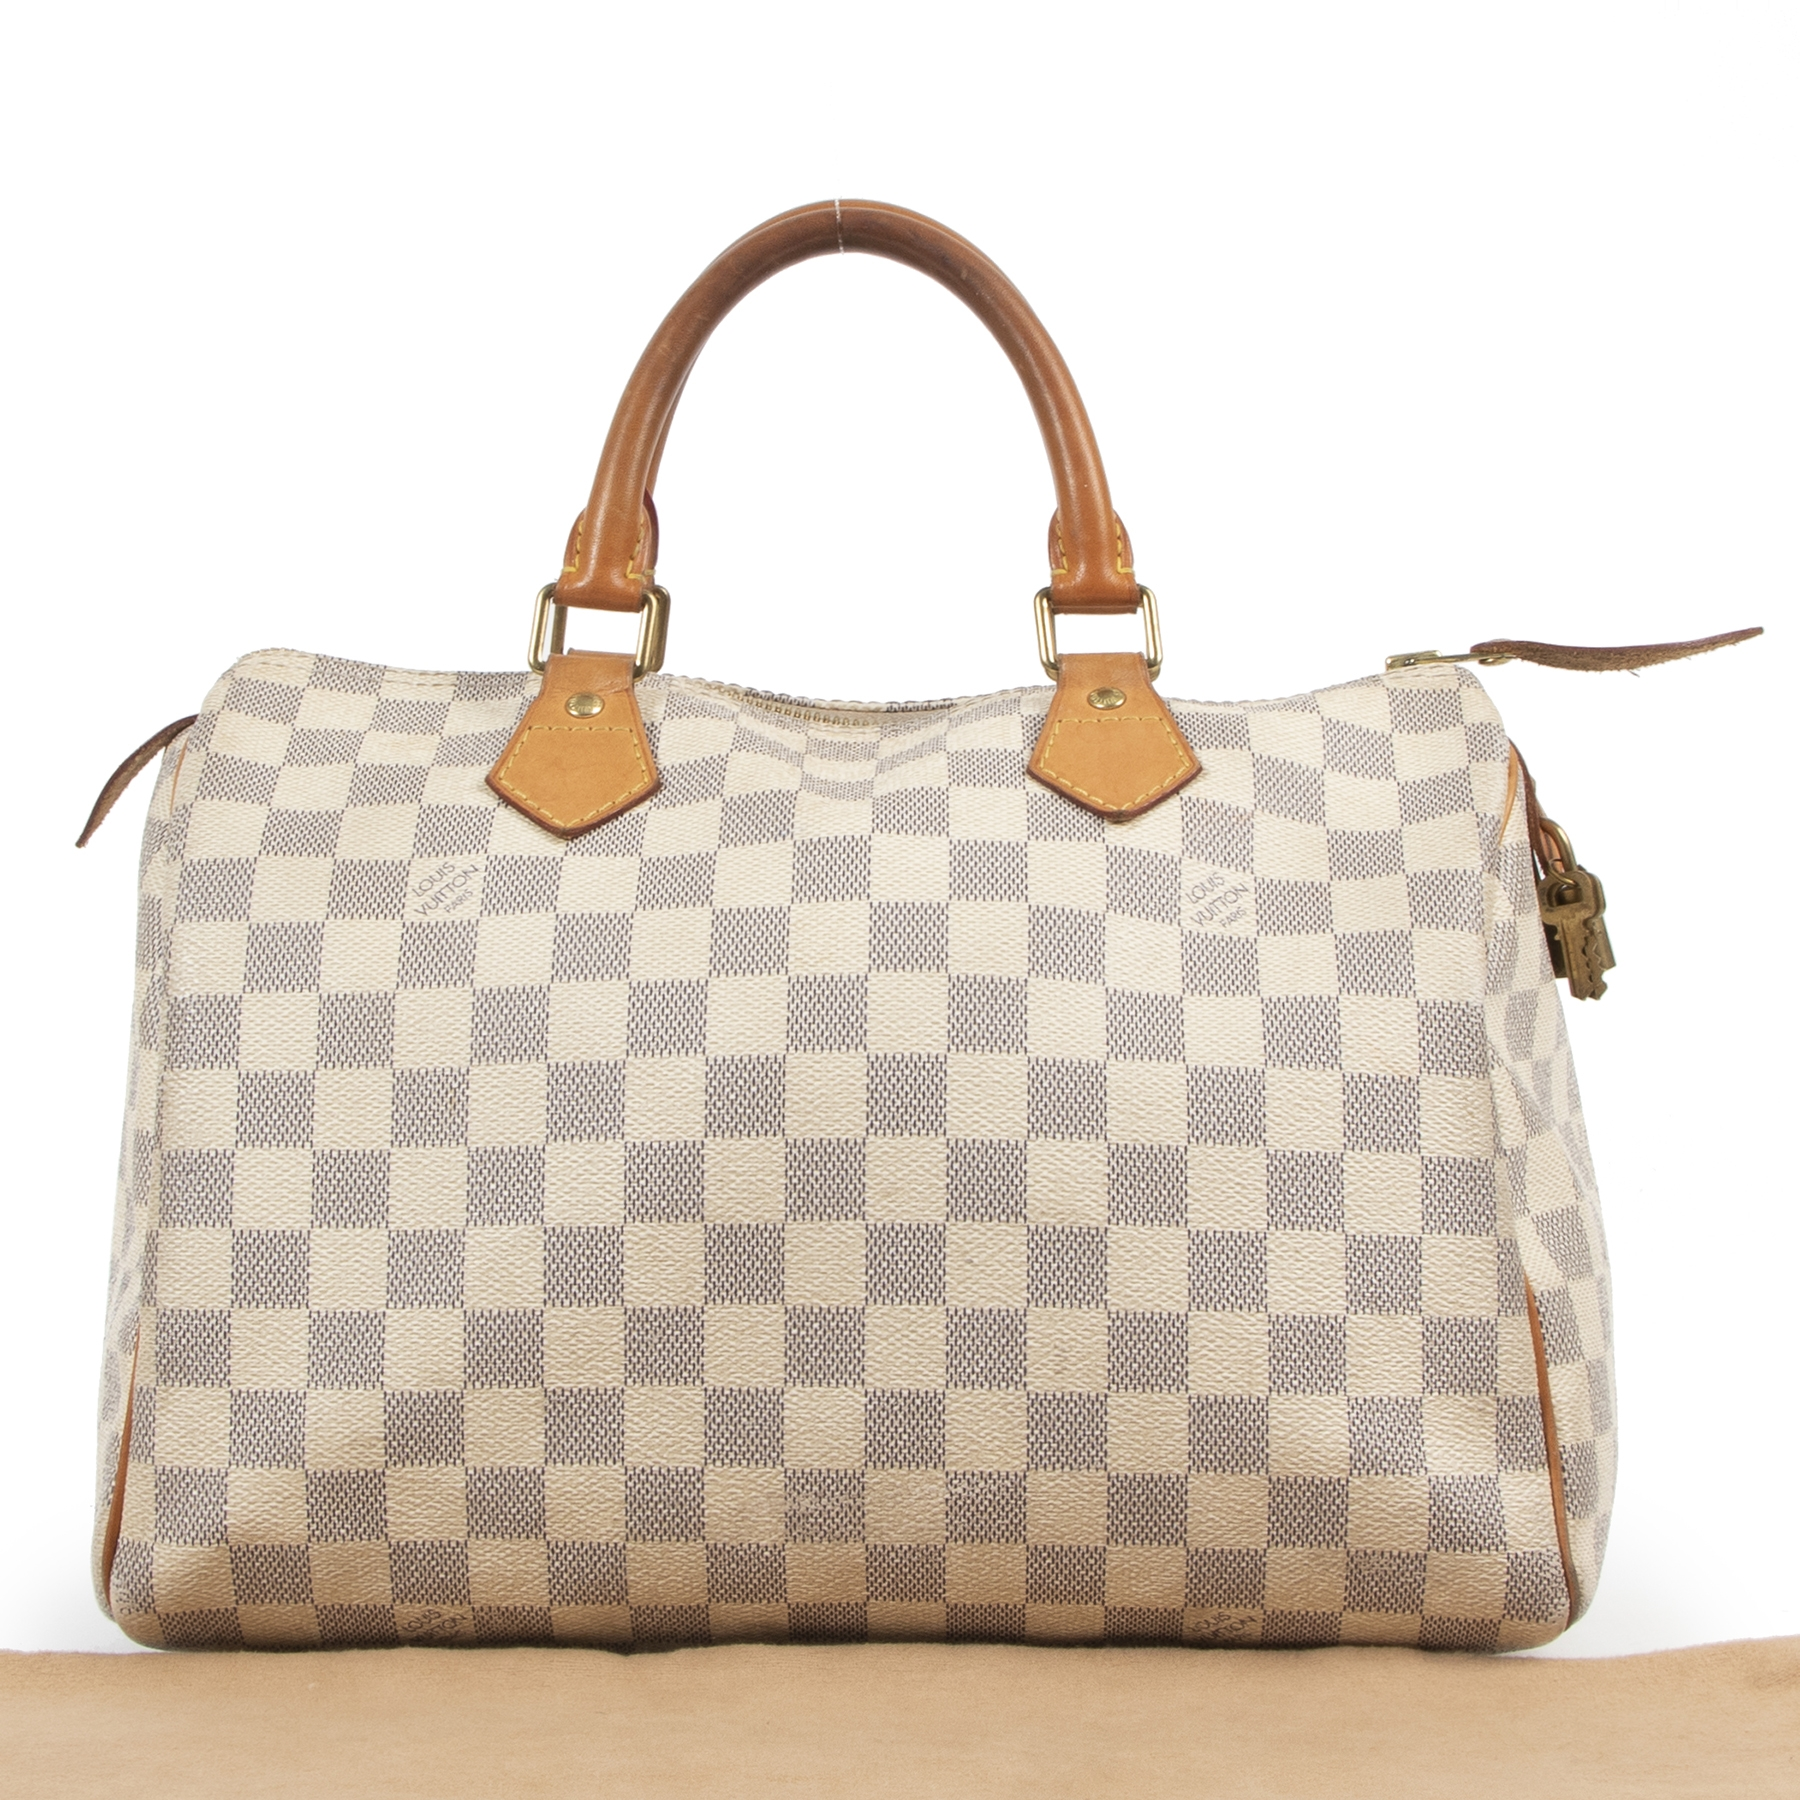 Authentic secondhand Louis Vuitton Damier Azur Speedy 30 Bag designer bags fashion luxury vintage webshop safe secure online shopping